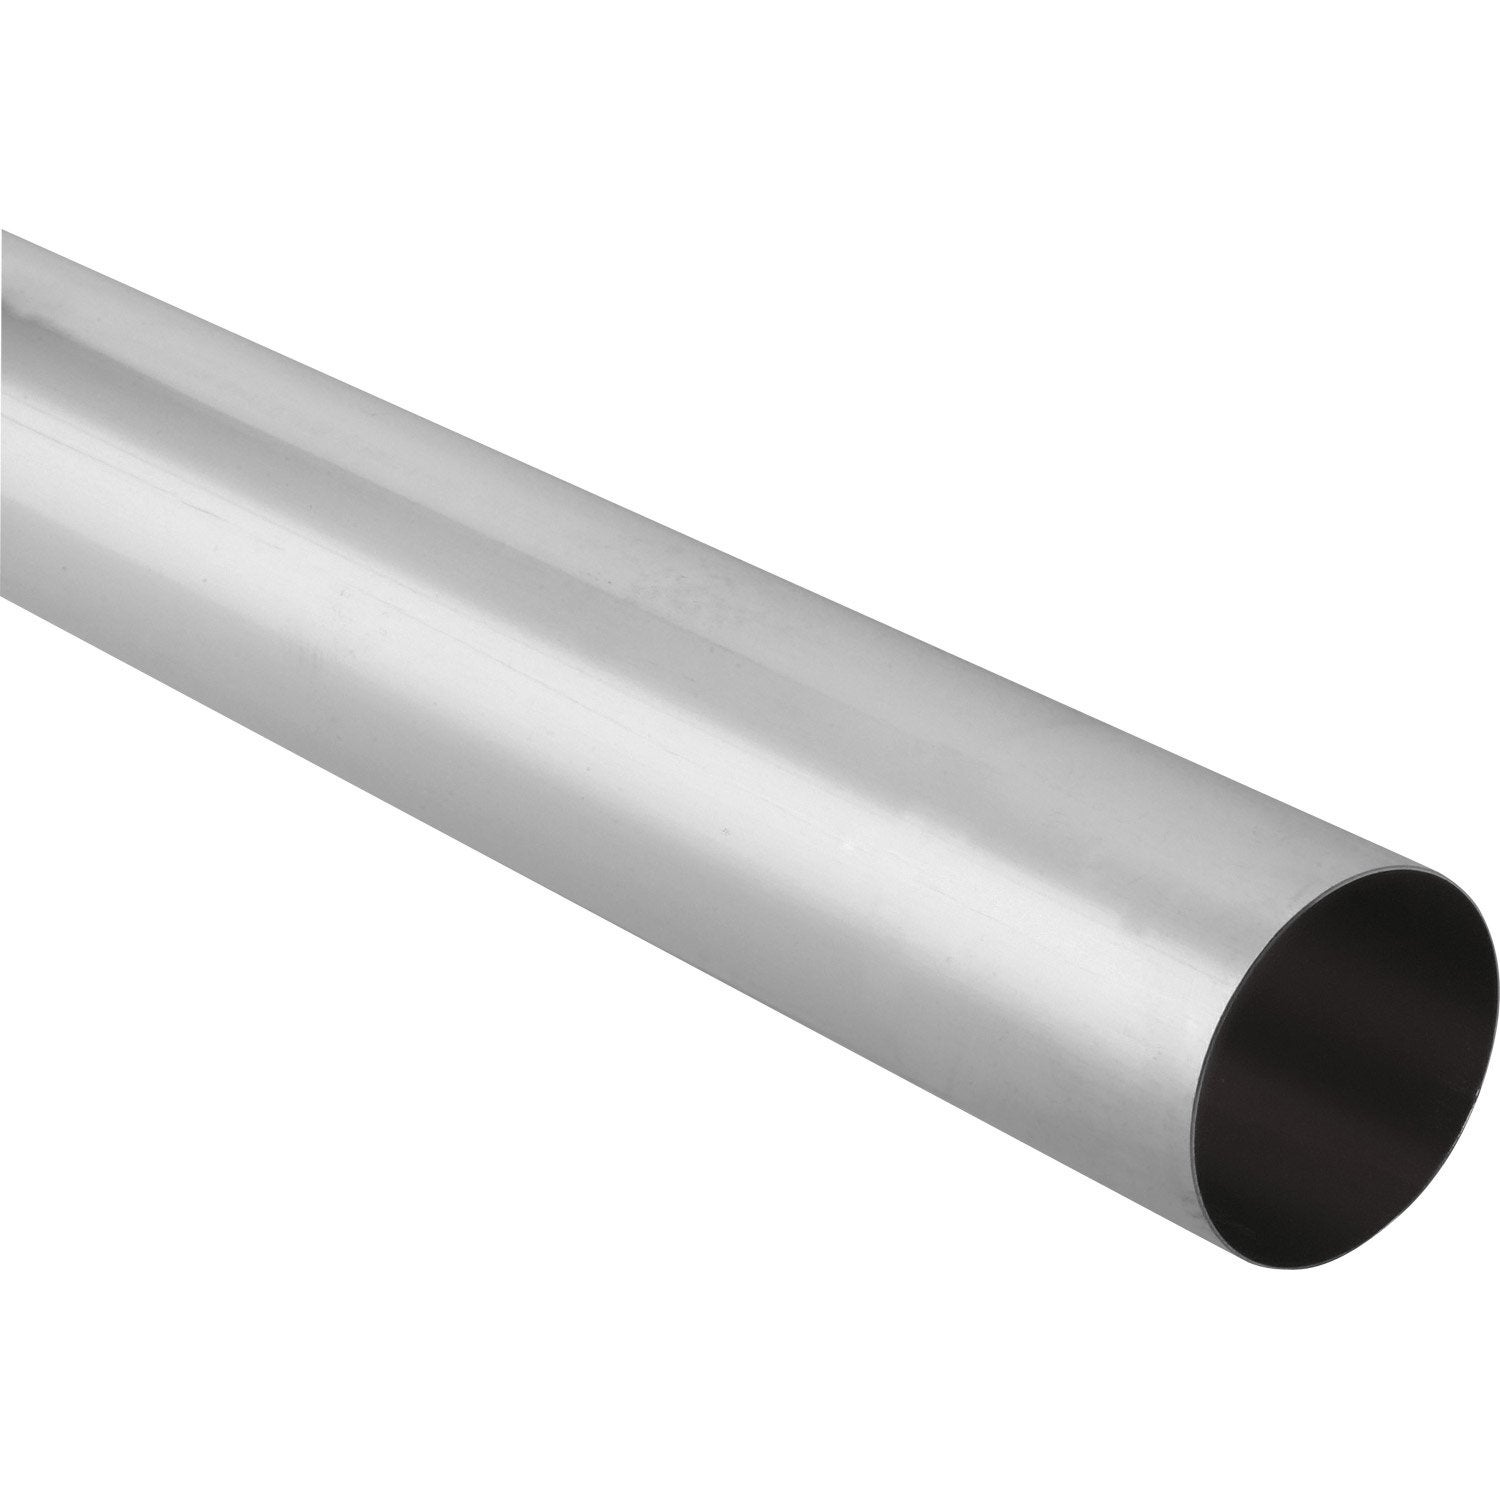 Tuyau de descente zinc gris mm l 2 m scover plus for Tube pvc 100 diametre interieur